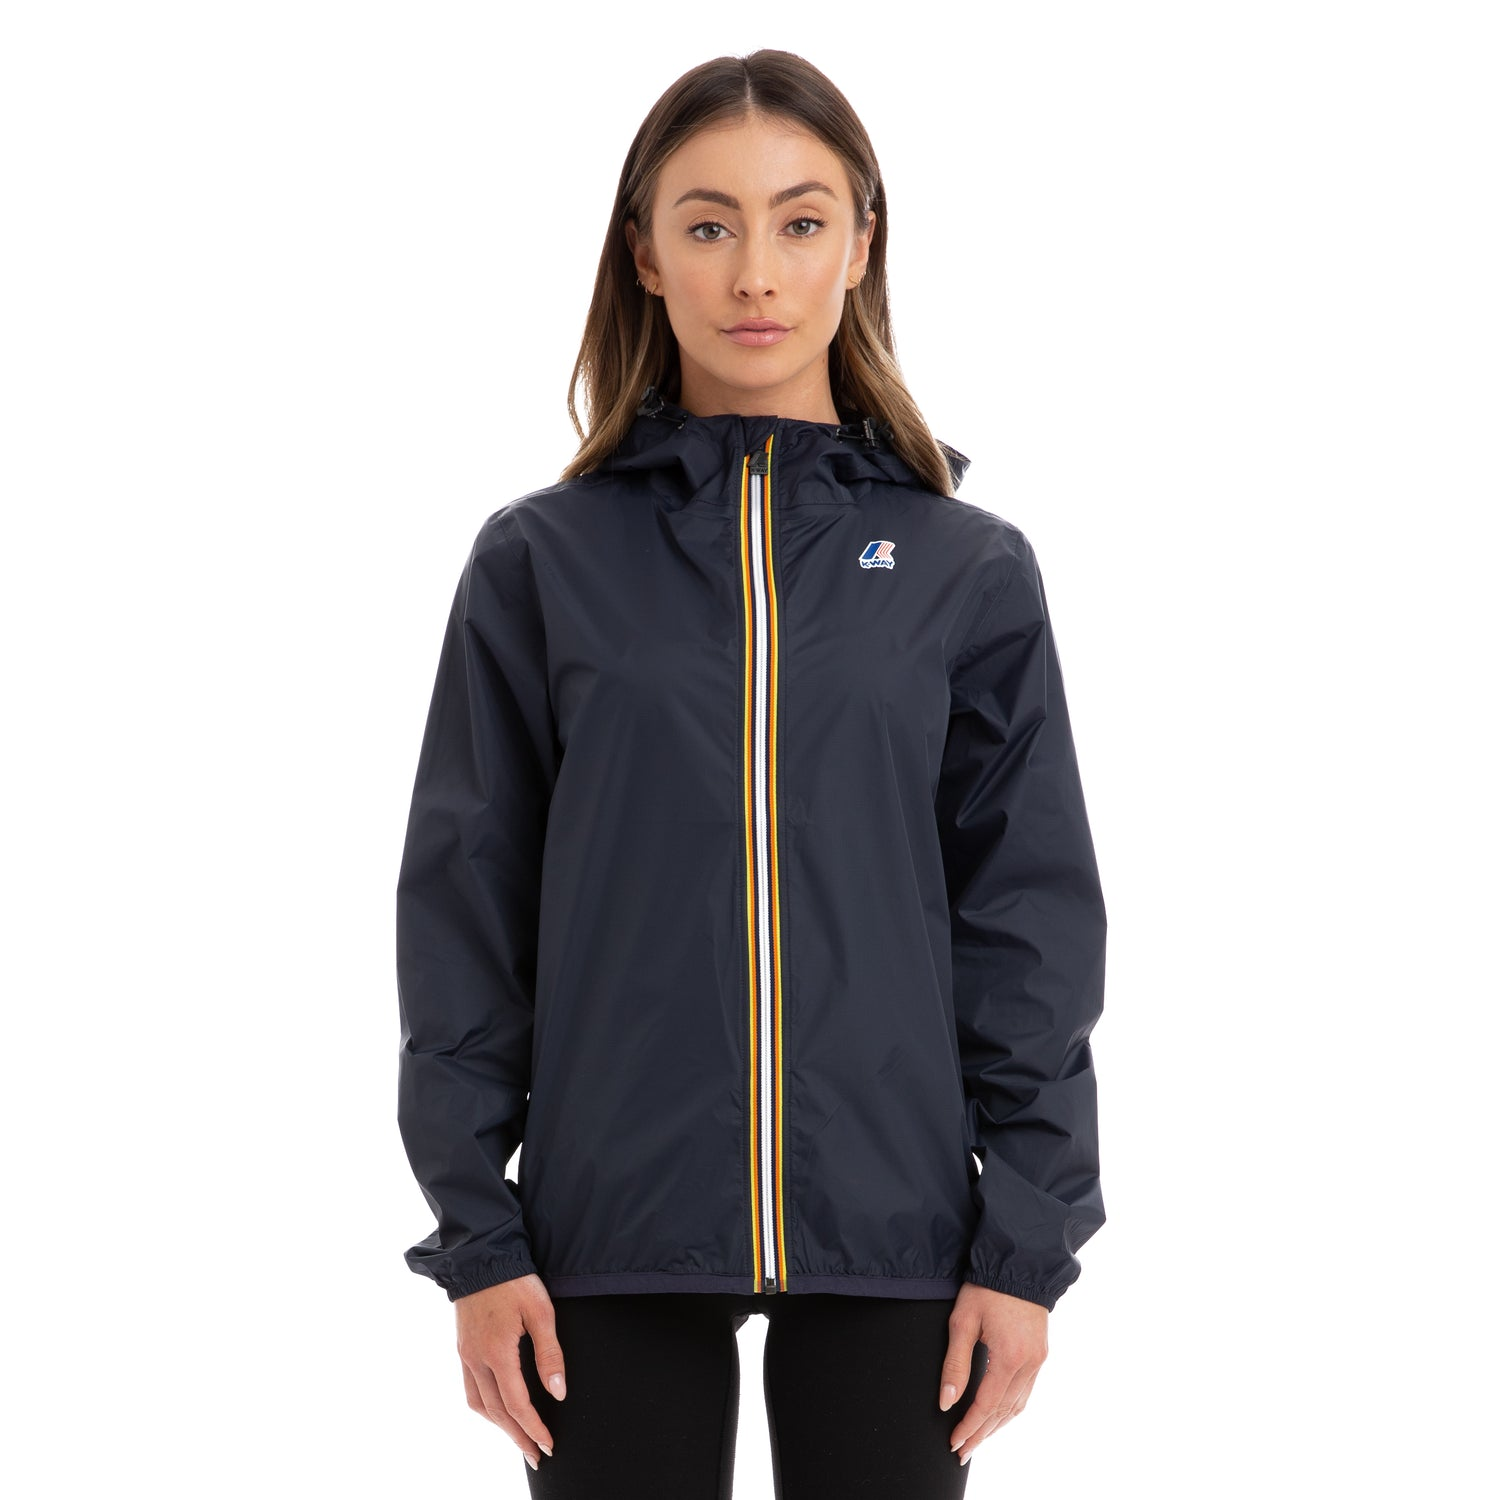 K-Way Women's Le Vrai 3.0 Claude Full Zip Jacket Blue Depth